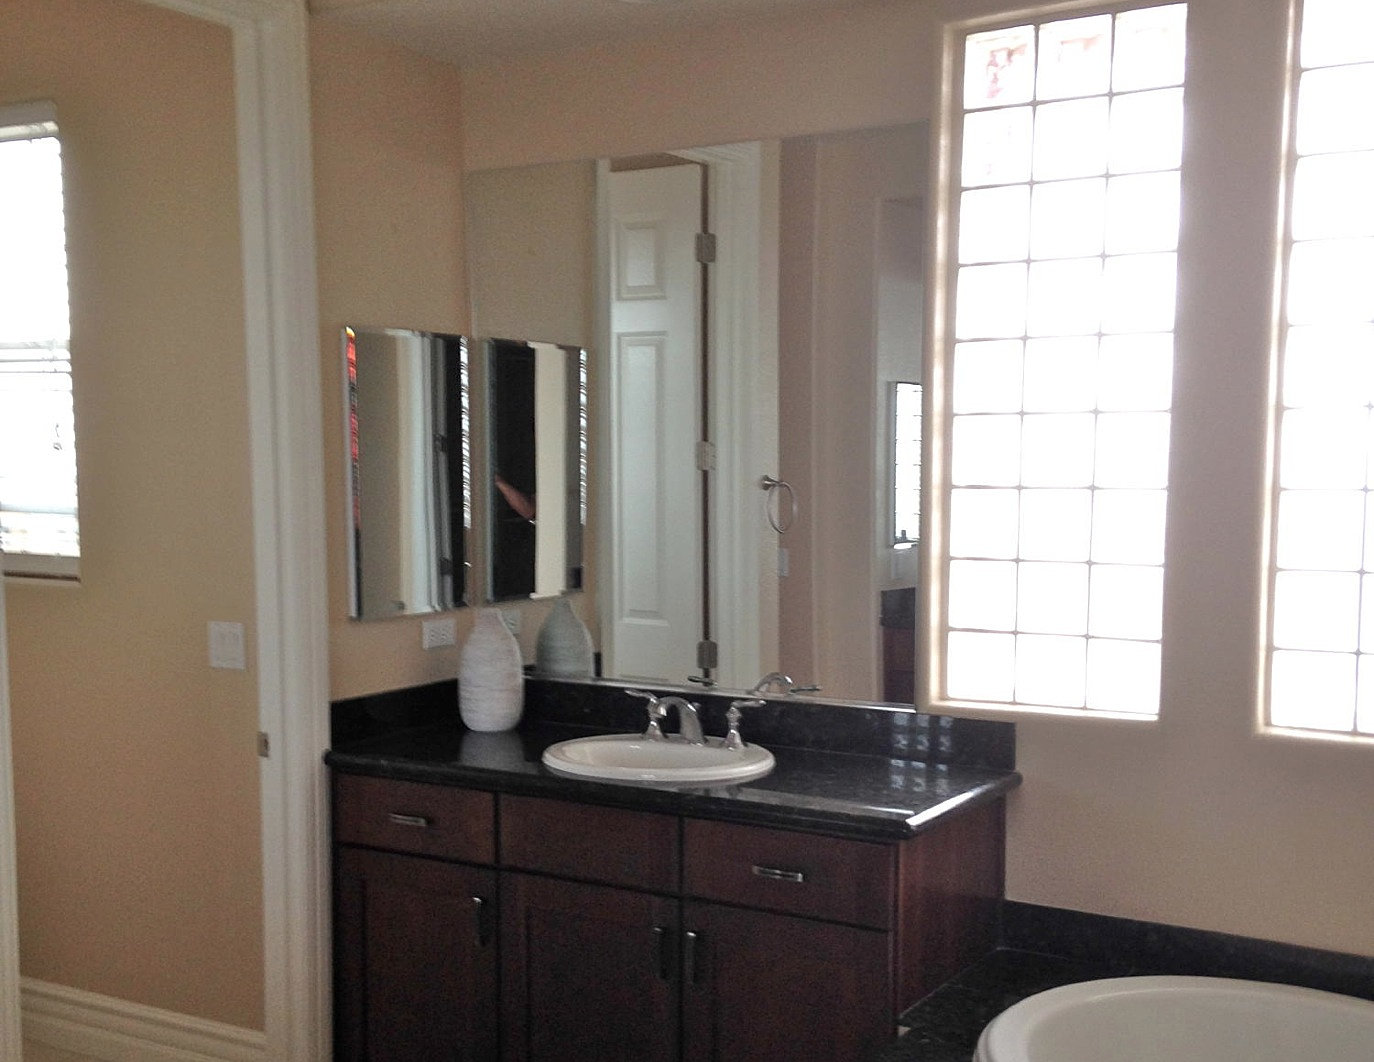 custom mirror installed bathroom mirror repair bathroom mirror replaced mirror replacement mirror - Bathroom Accessories Las Vegas